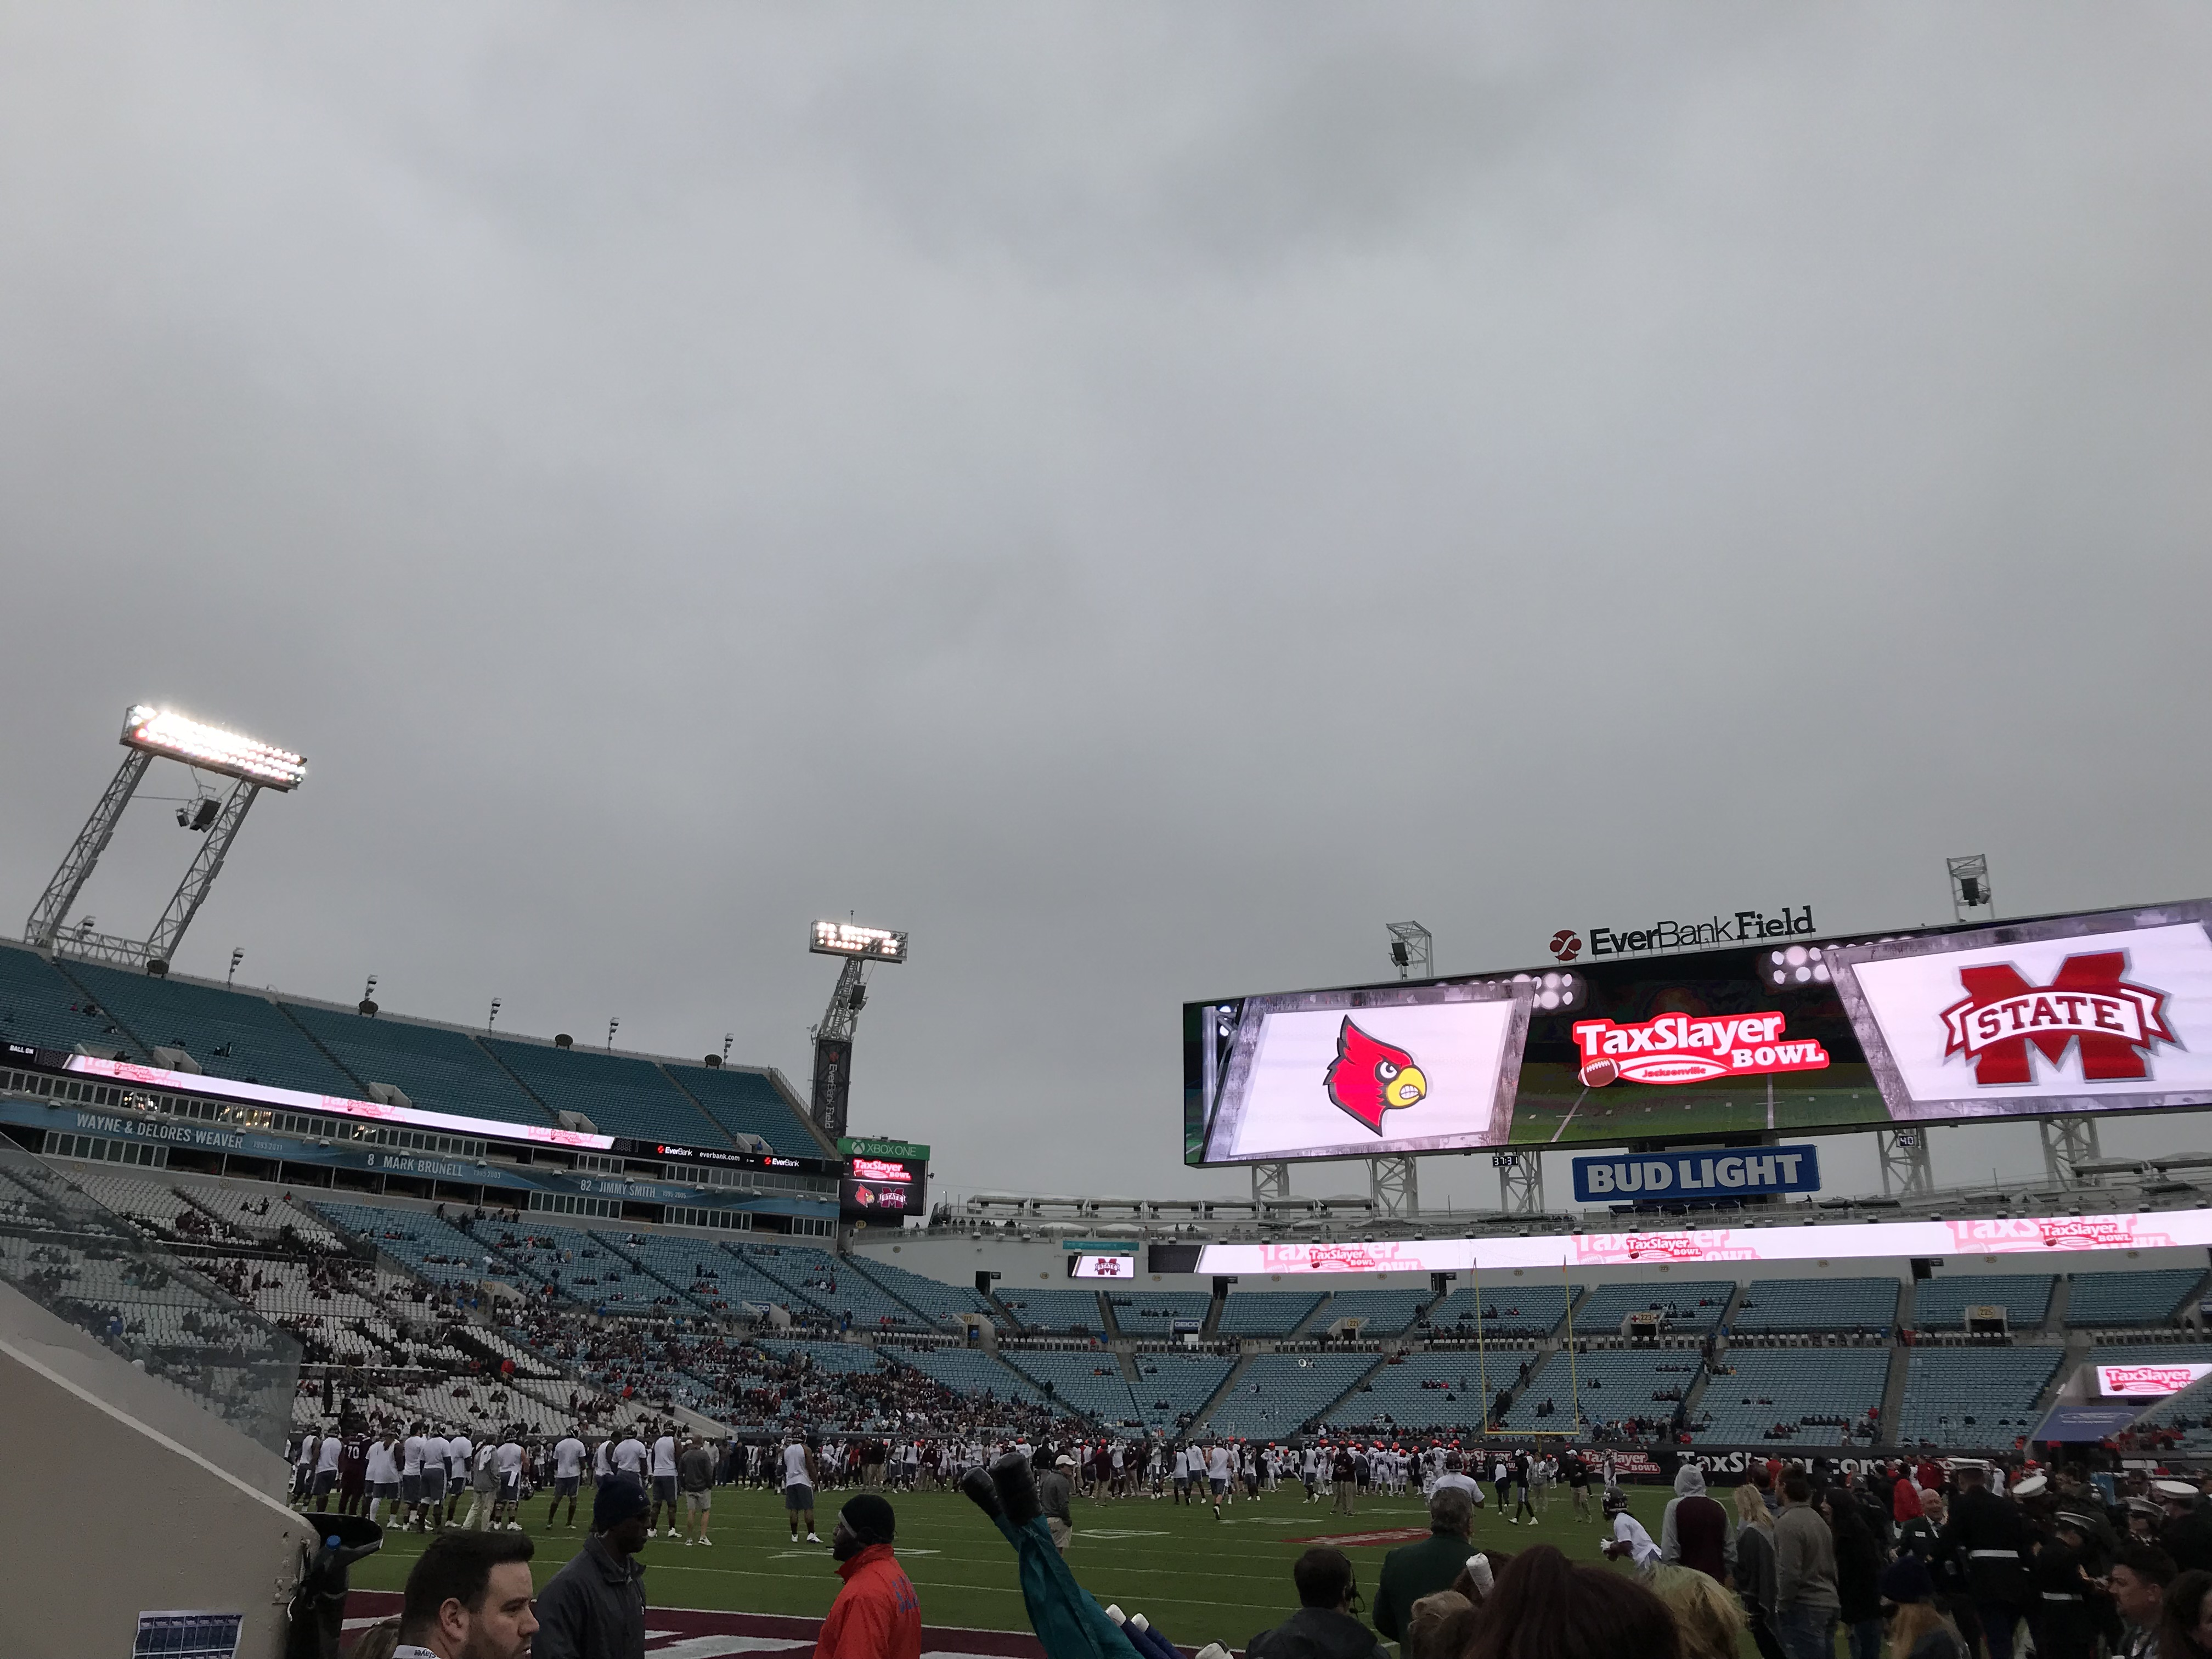 View from the field, photo: Maroon & Gray